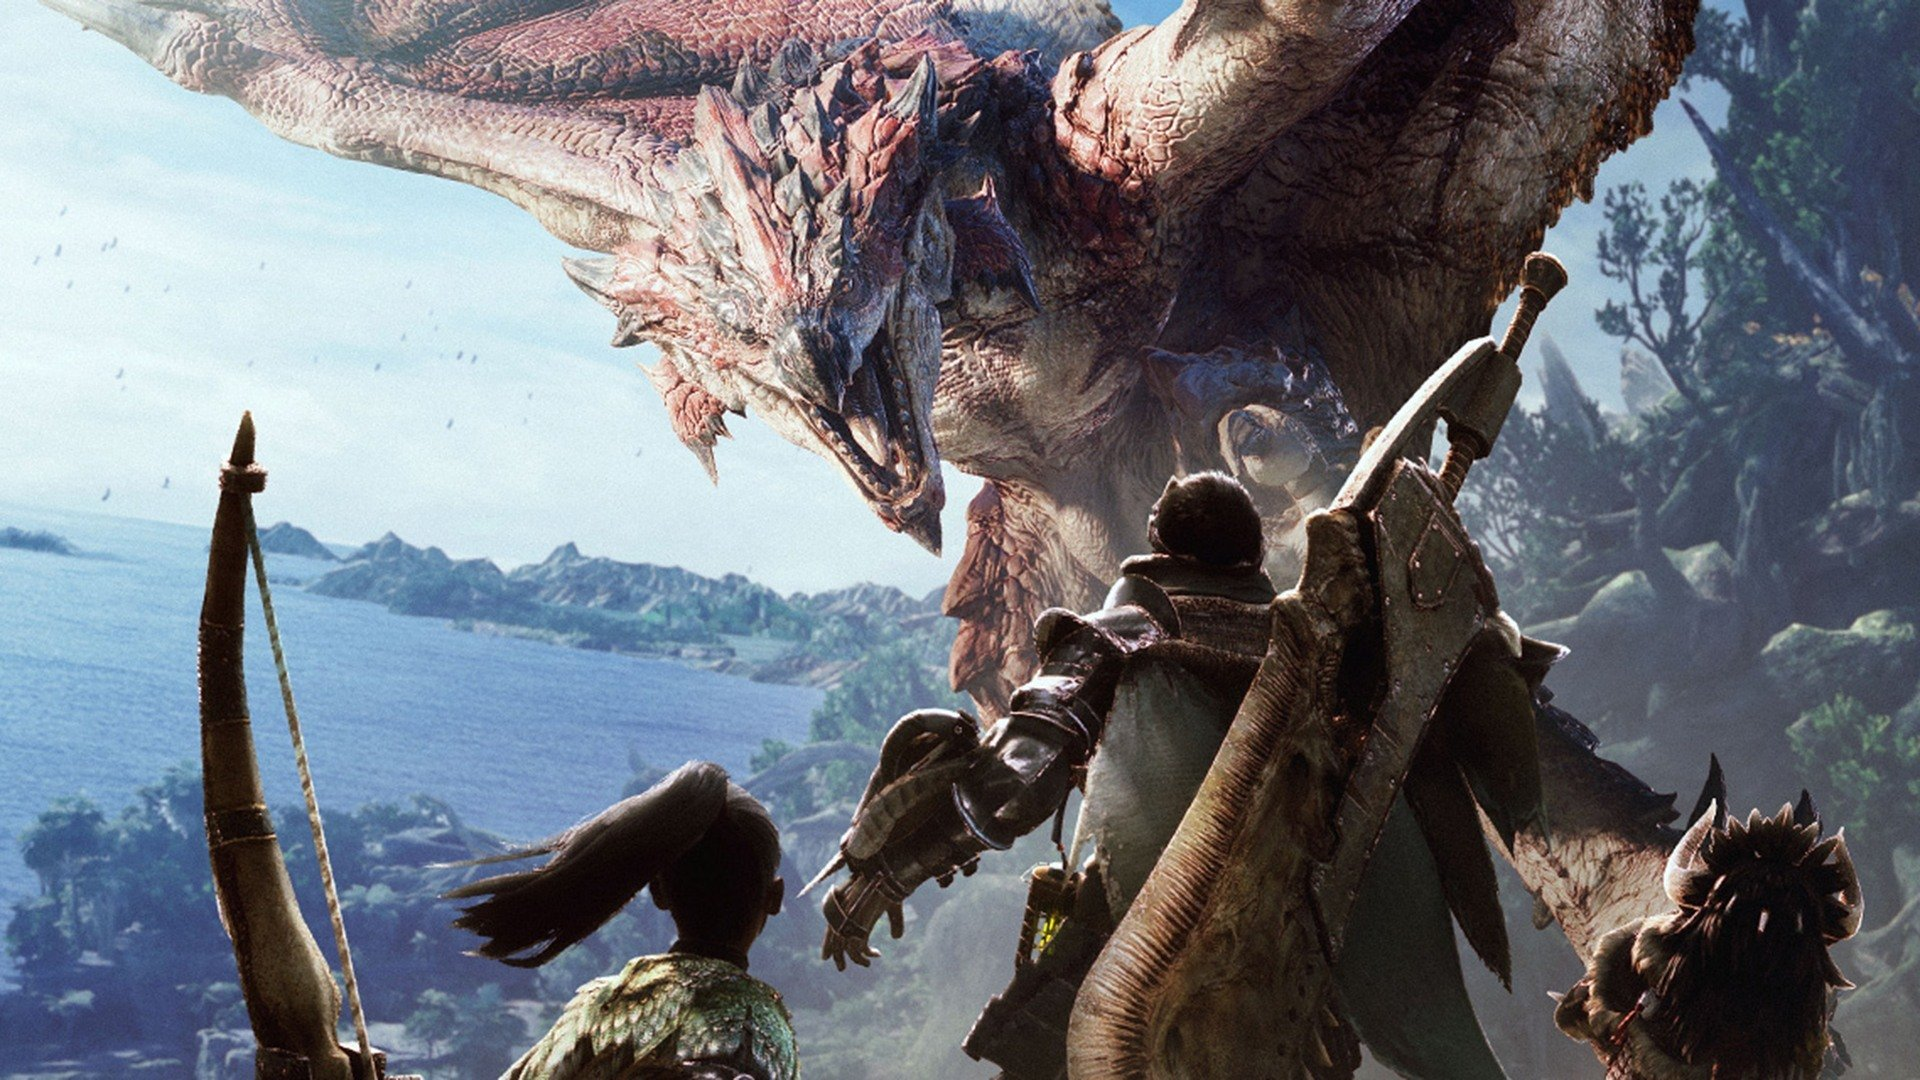 monsterhunterworldblog-1516809712015.jpg